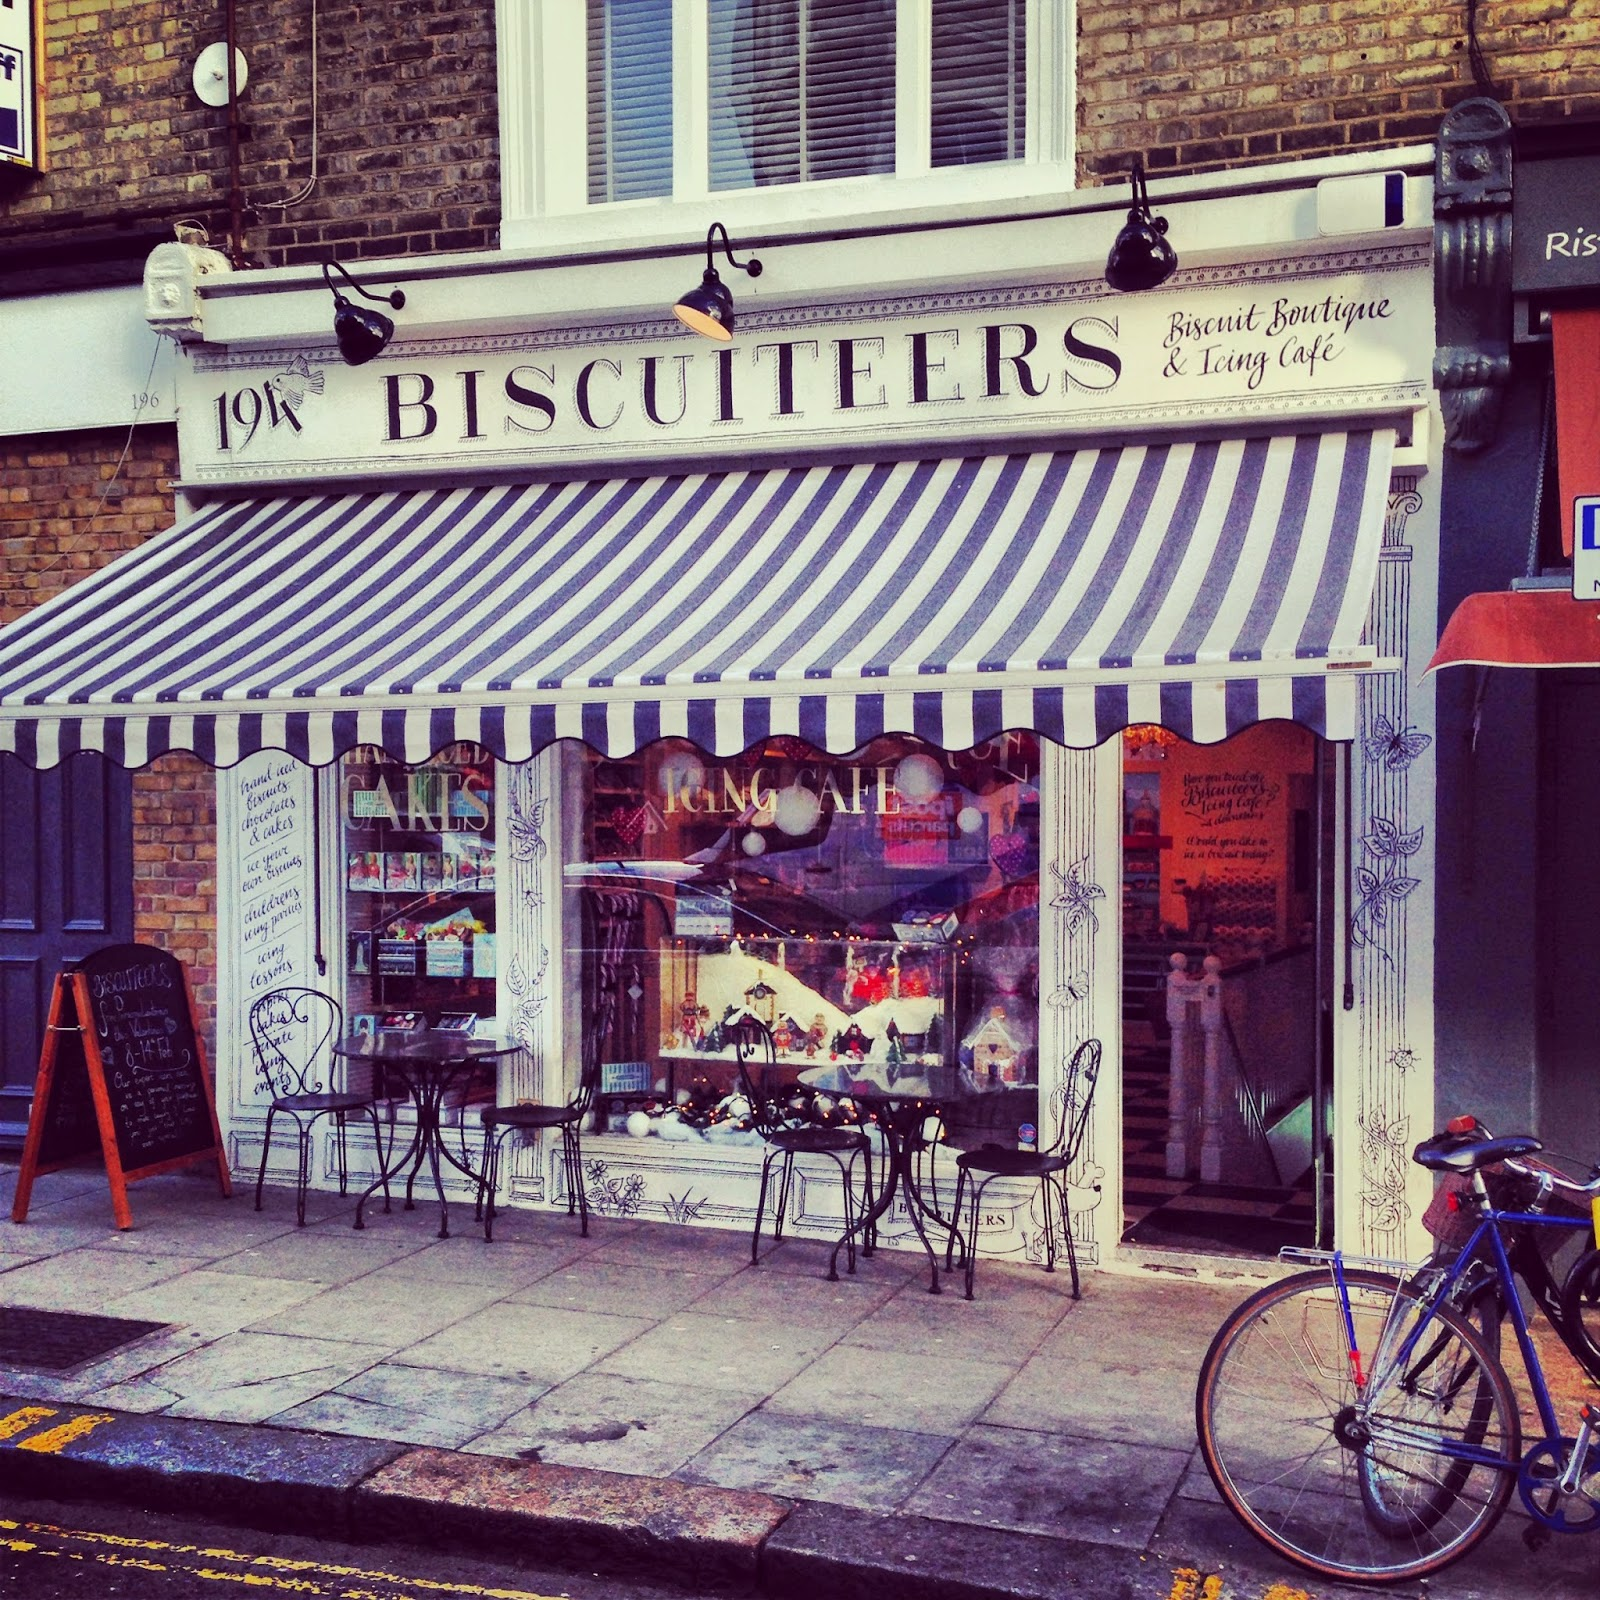 The Biscuiteers in Notting Hill